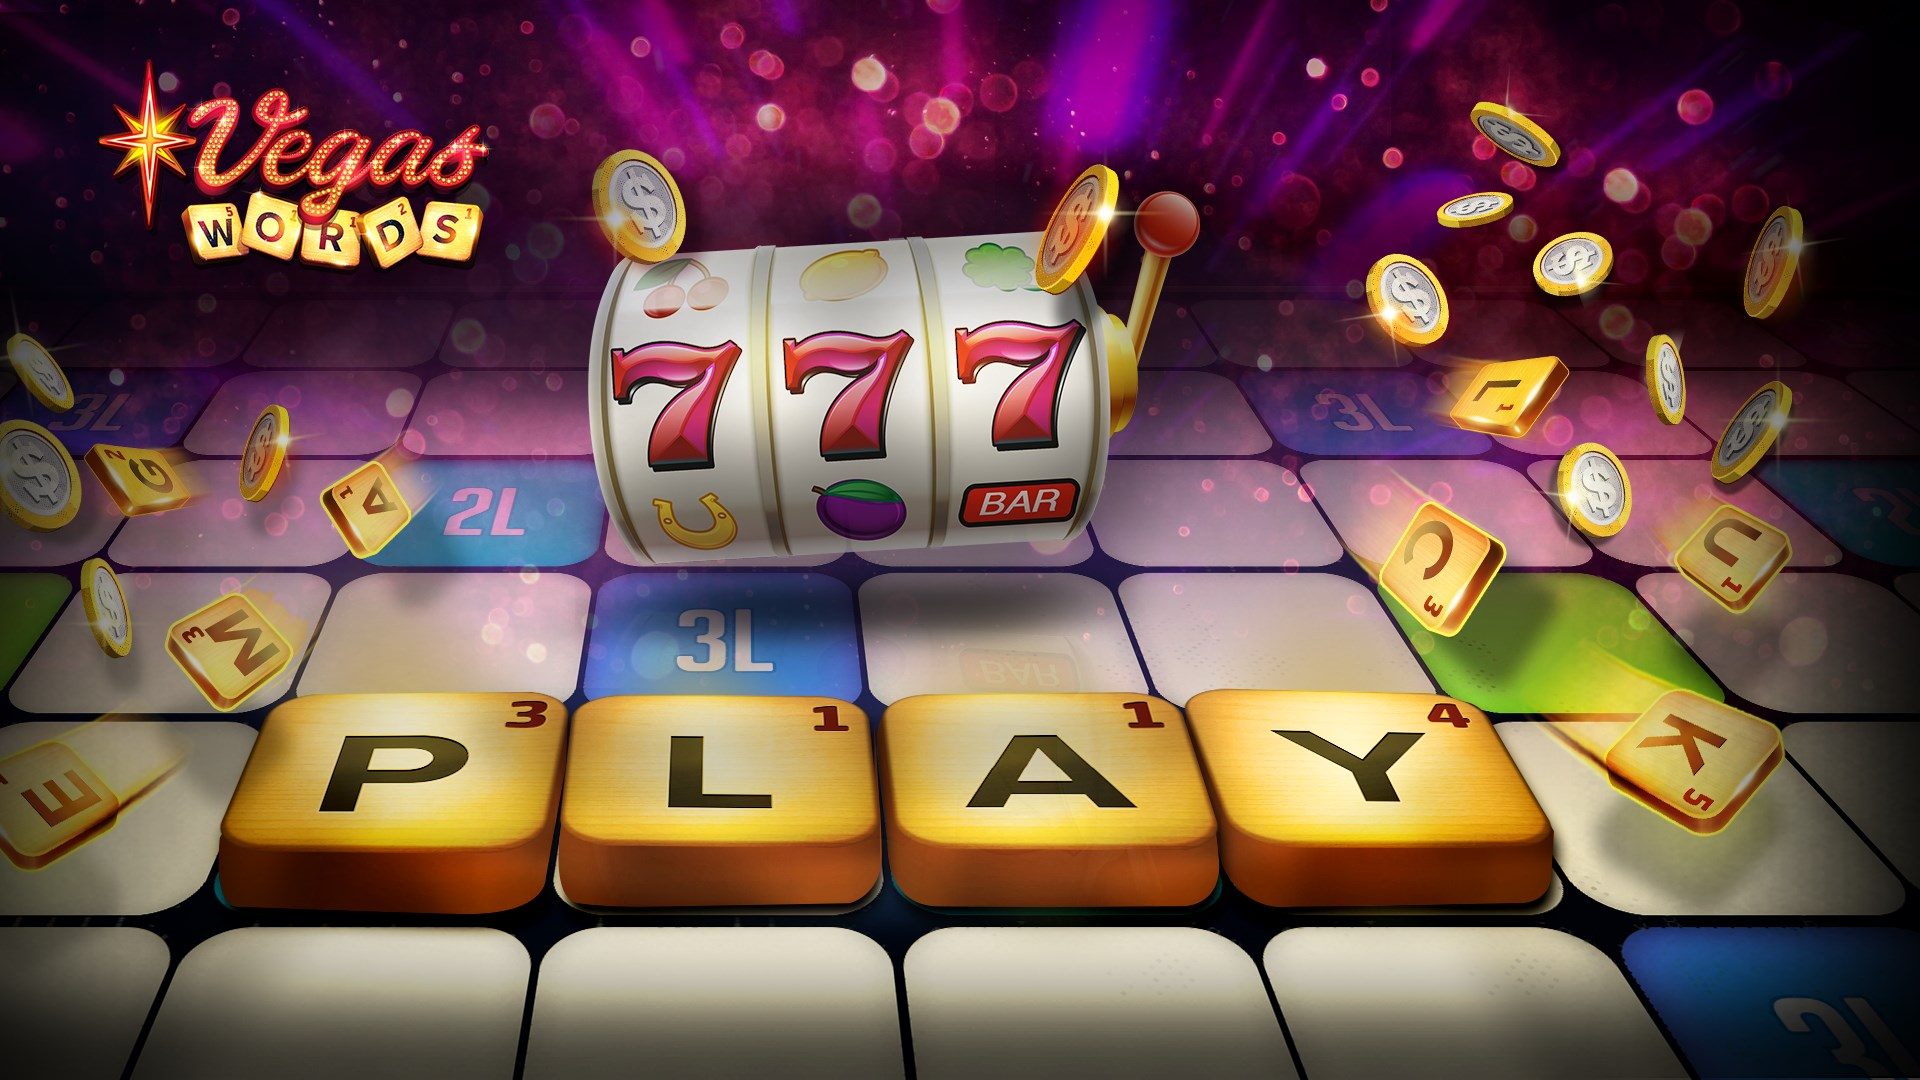 Play the best slot games by considering the wagering requirements on our website.